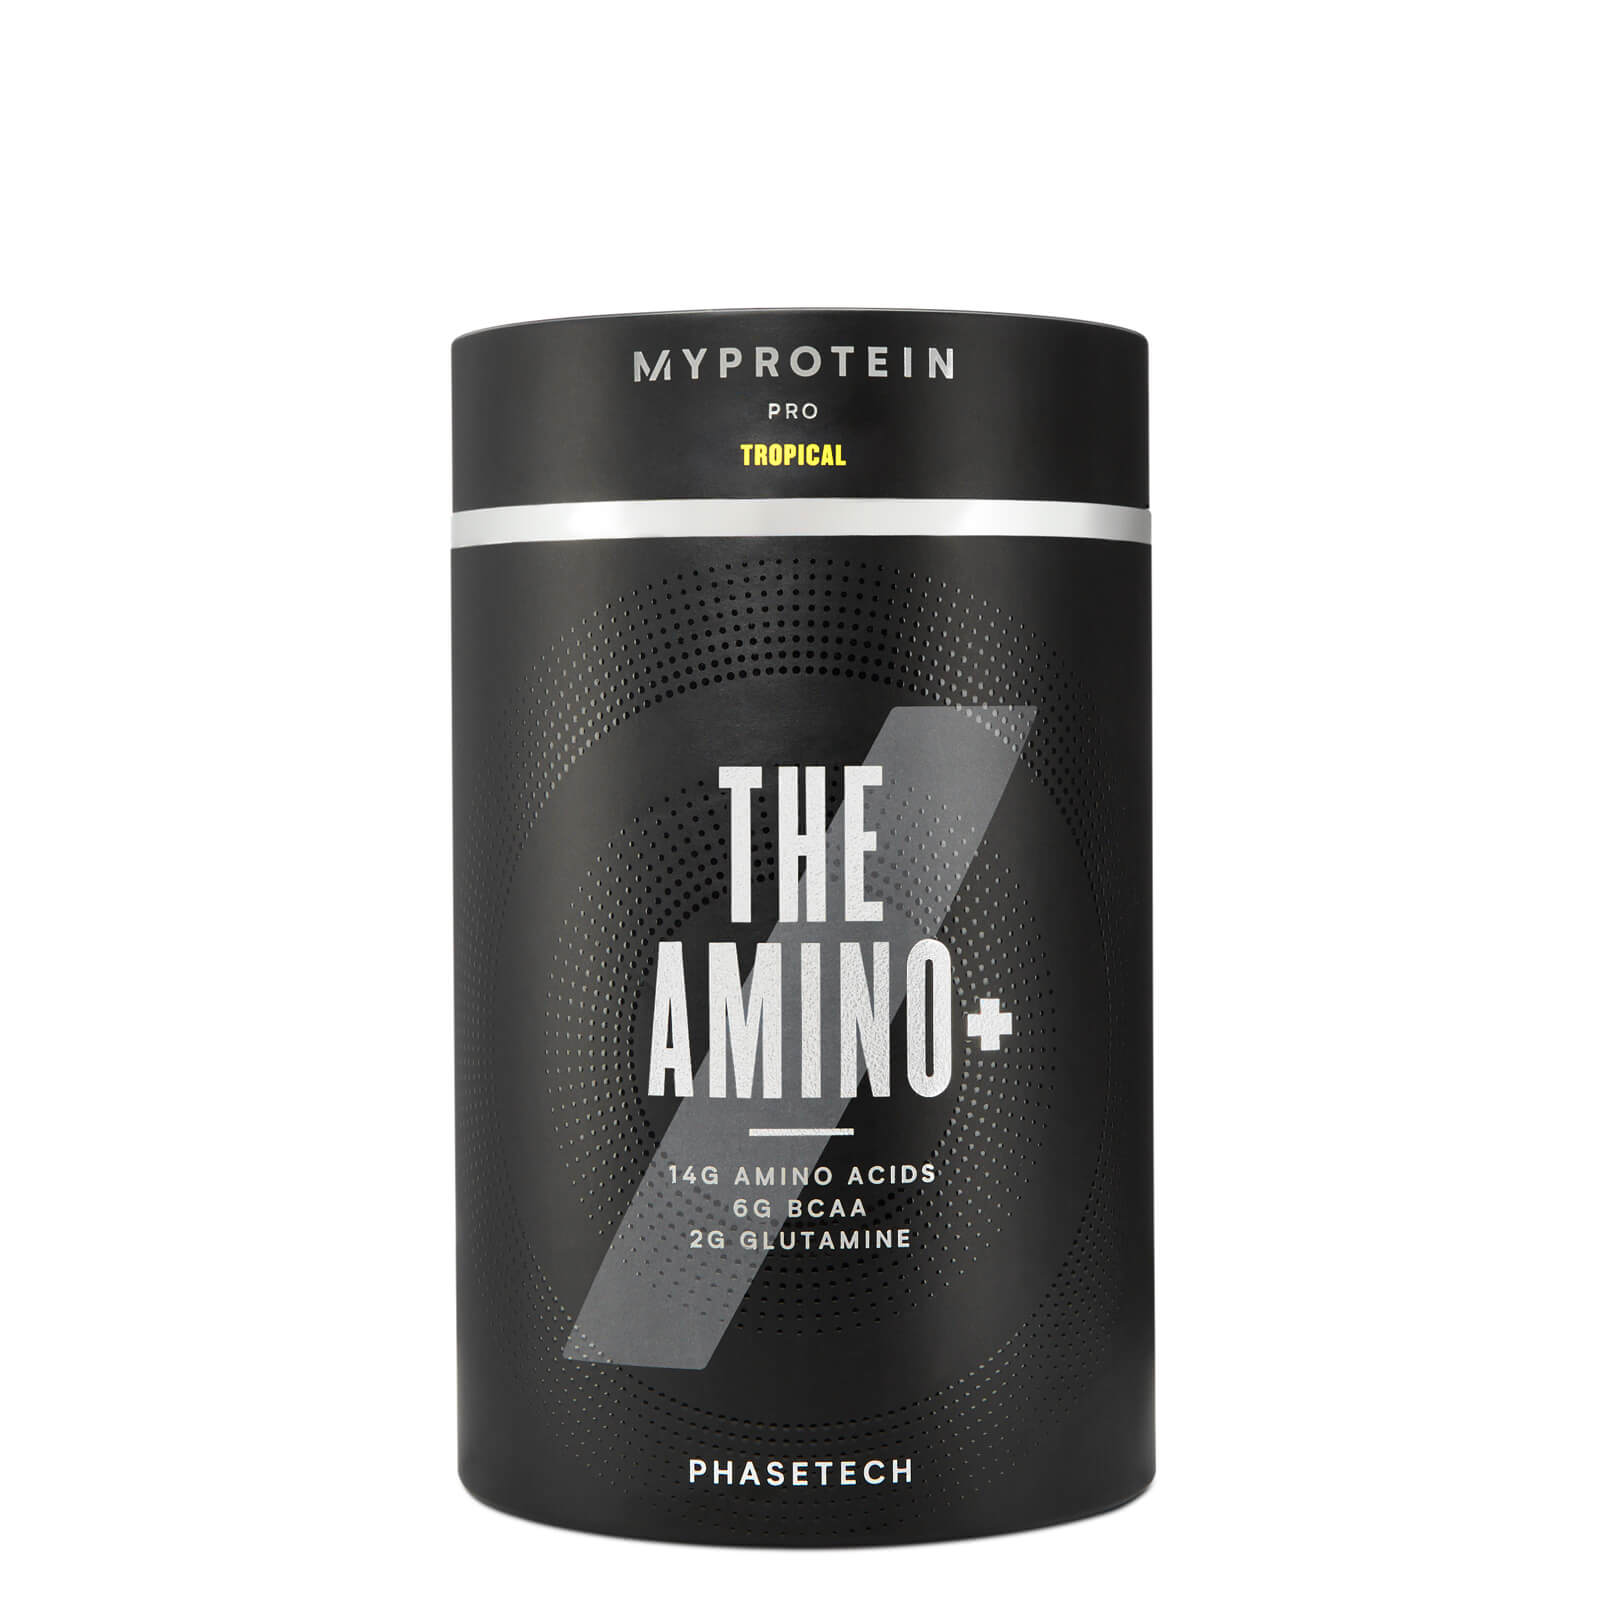 THE Amino+, Tropical - 20 Servings